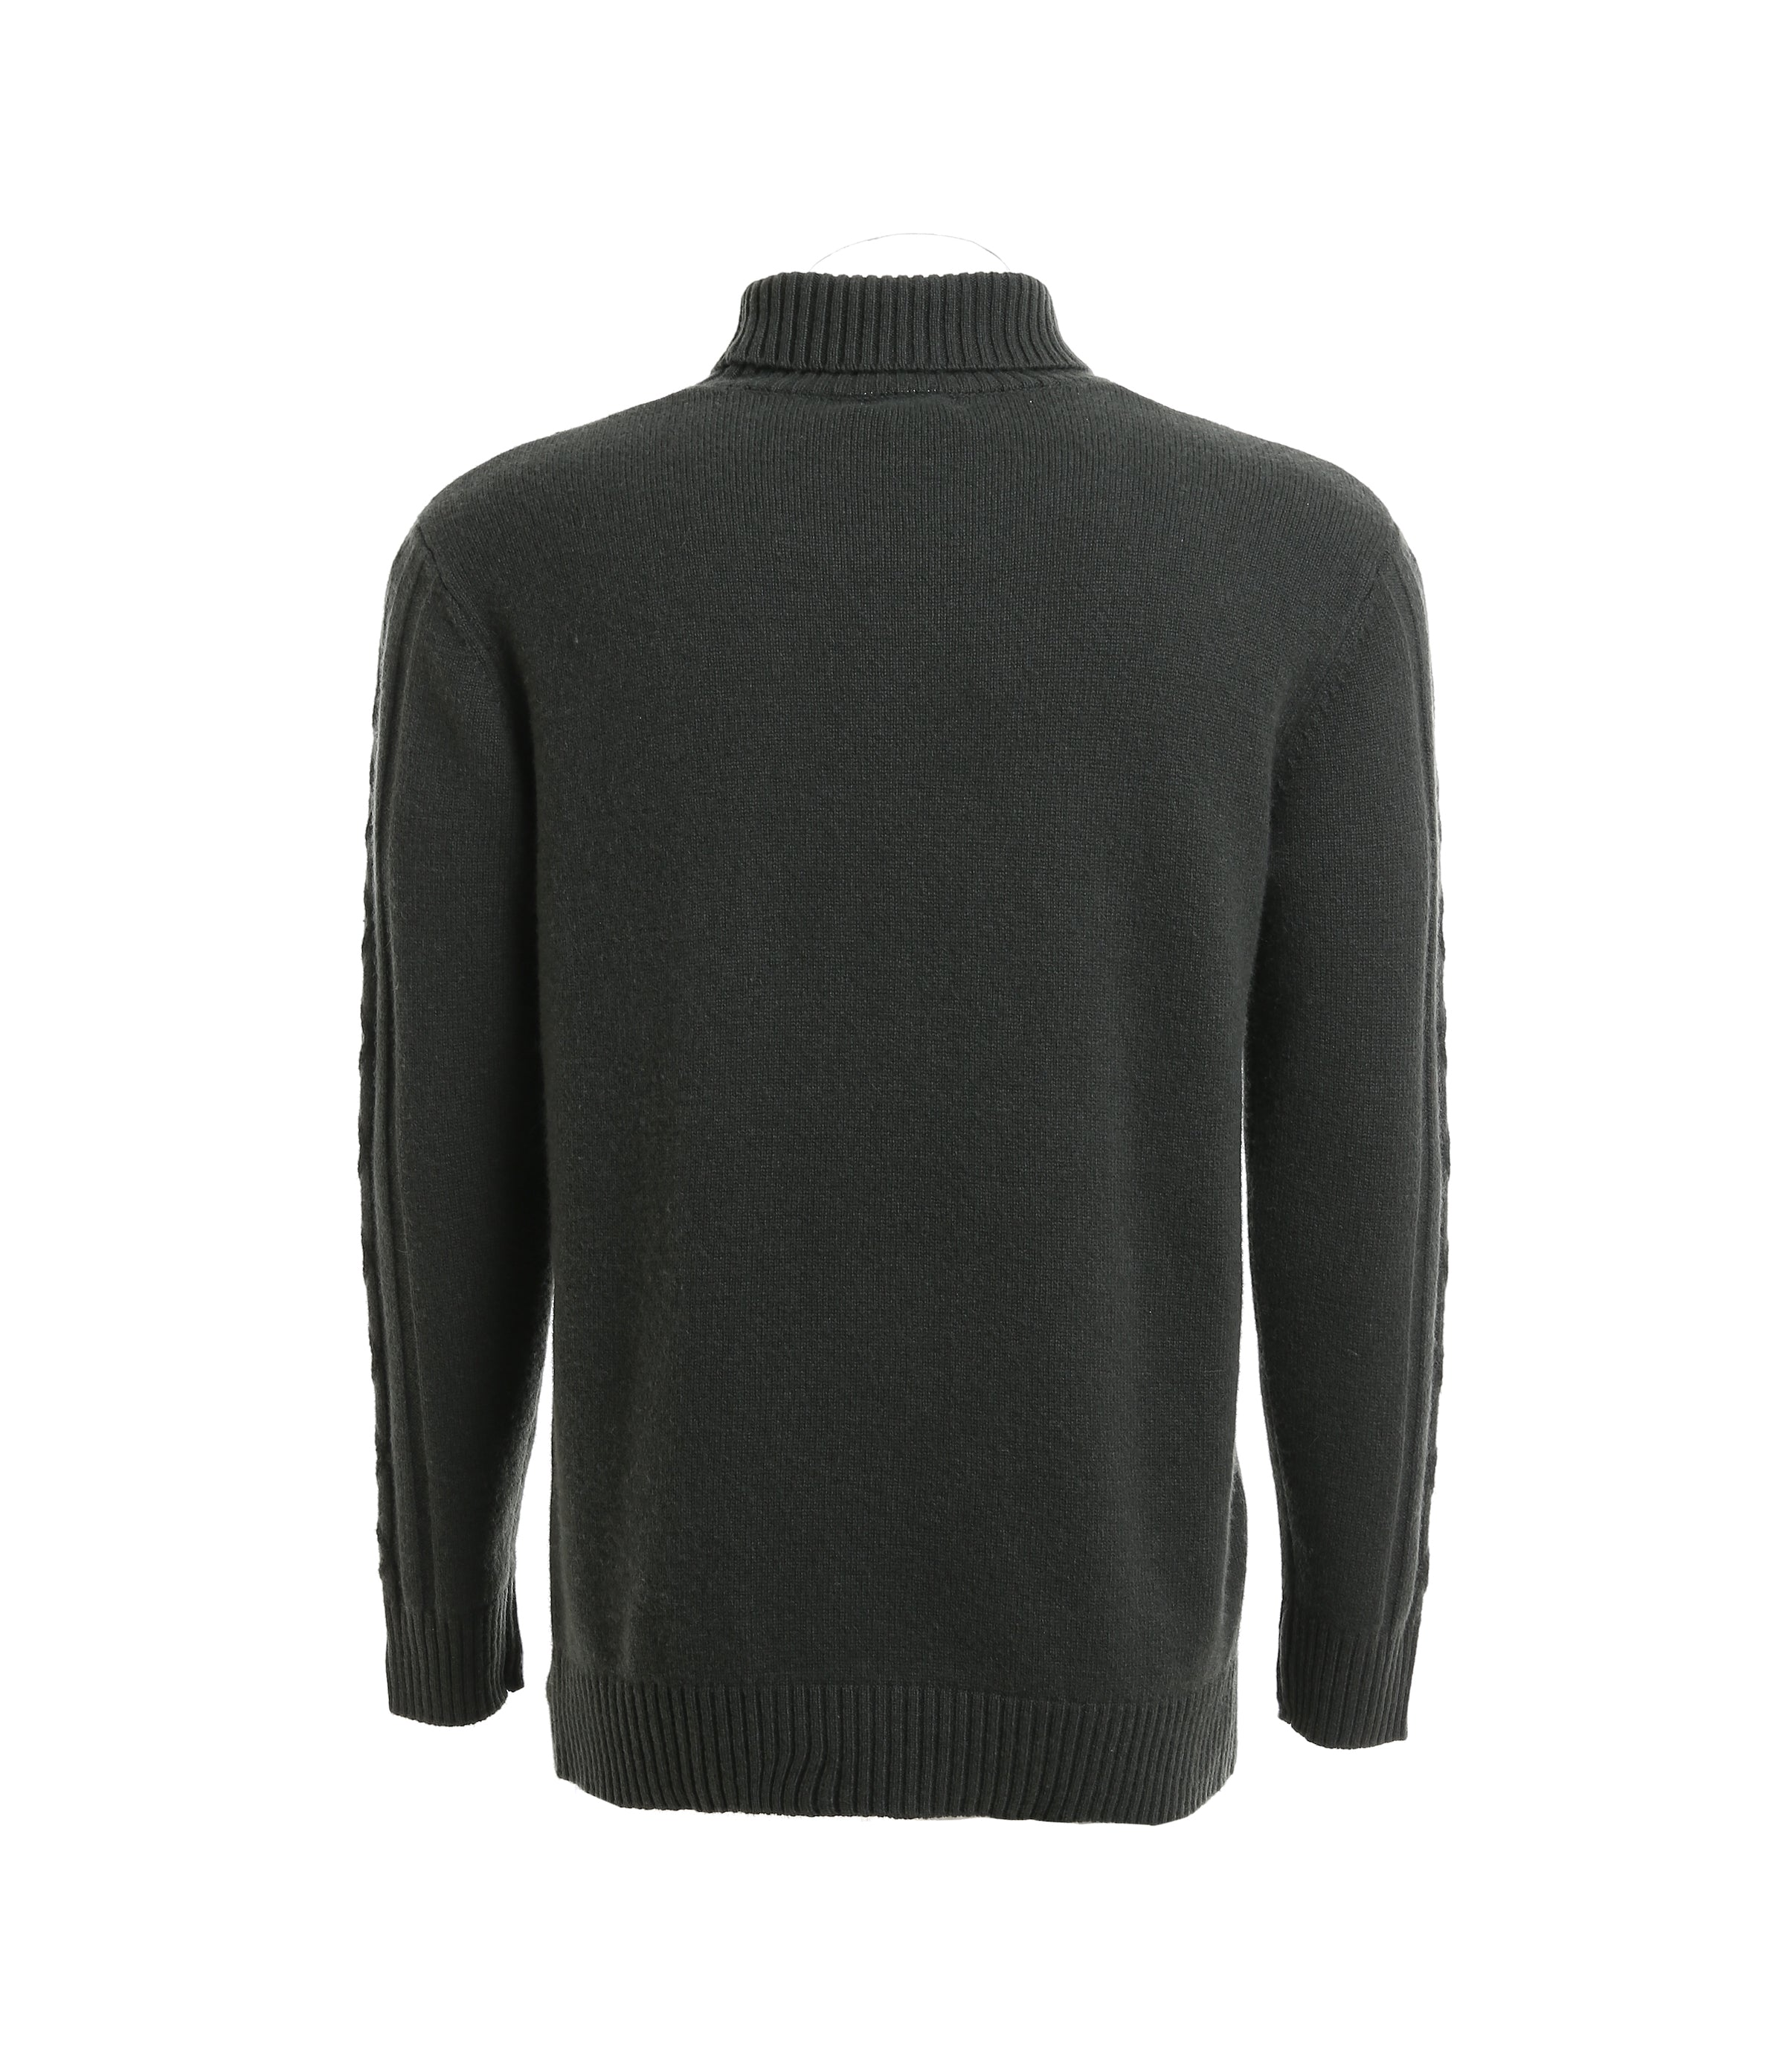 Cashmere Turtleneck Cable Knit Sweater